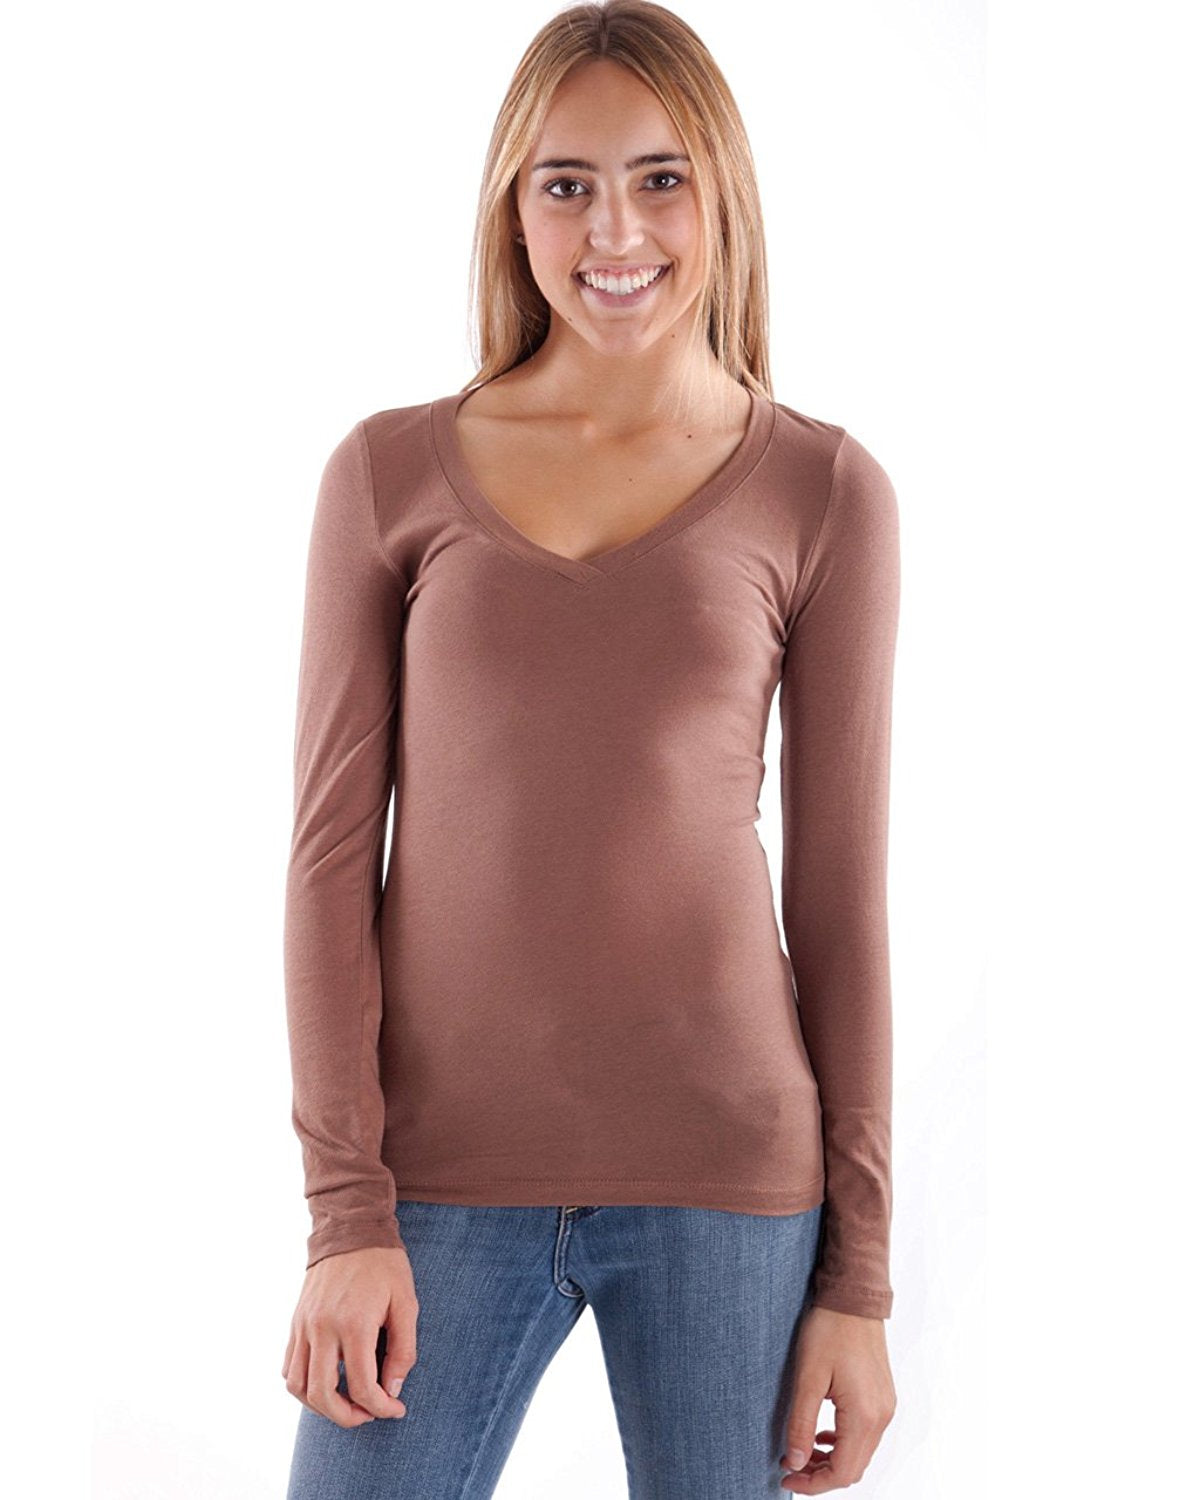 Hollywood Star Fashion Women's Long Sleeve V-Neck Tee Tank Top Shirt